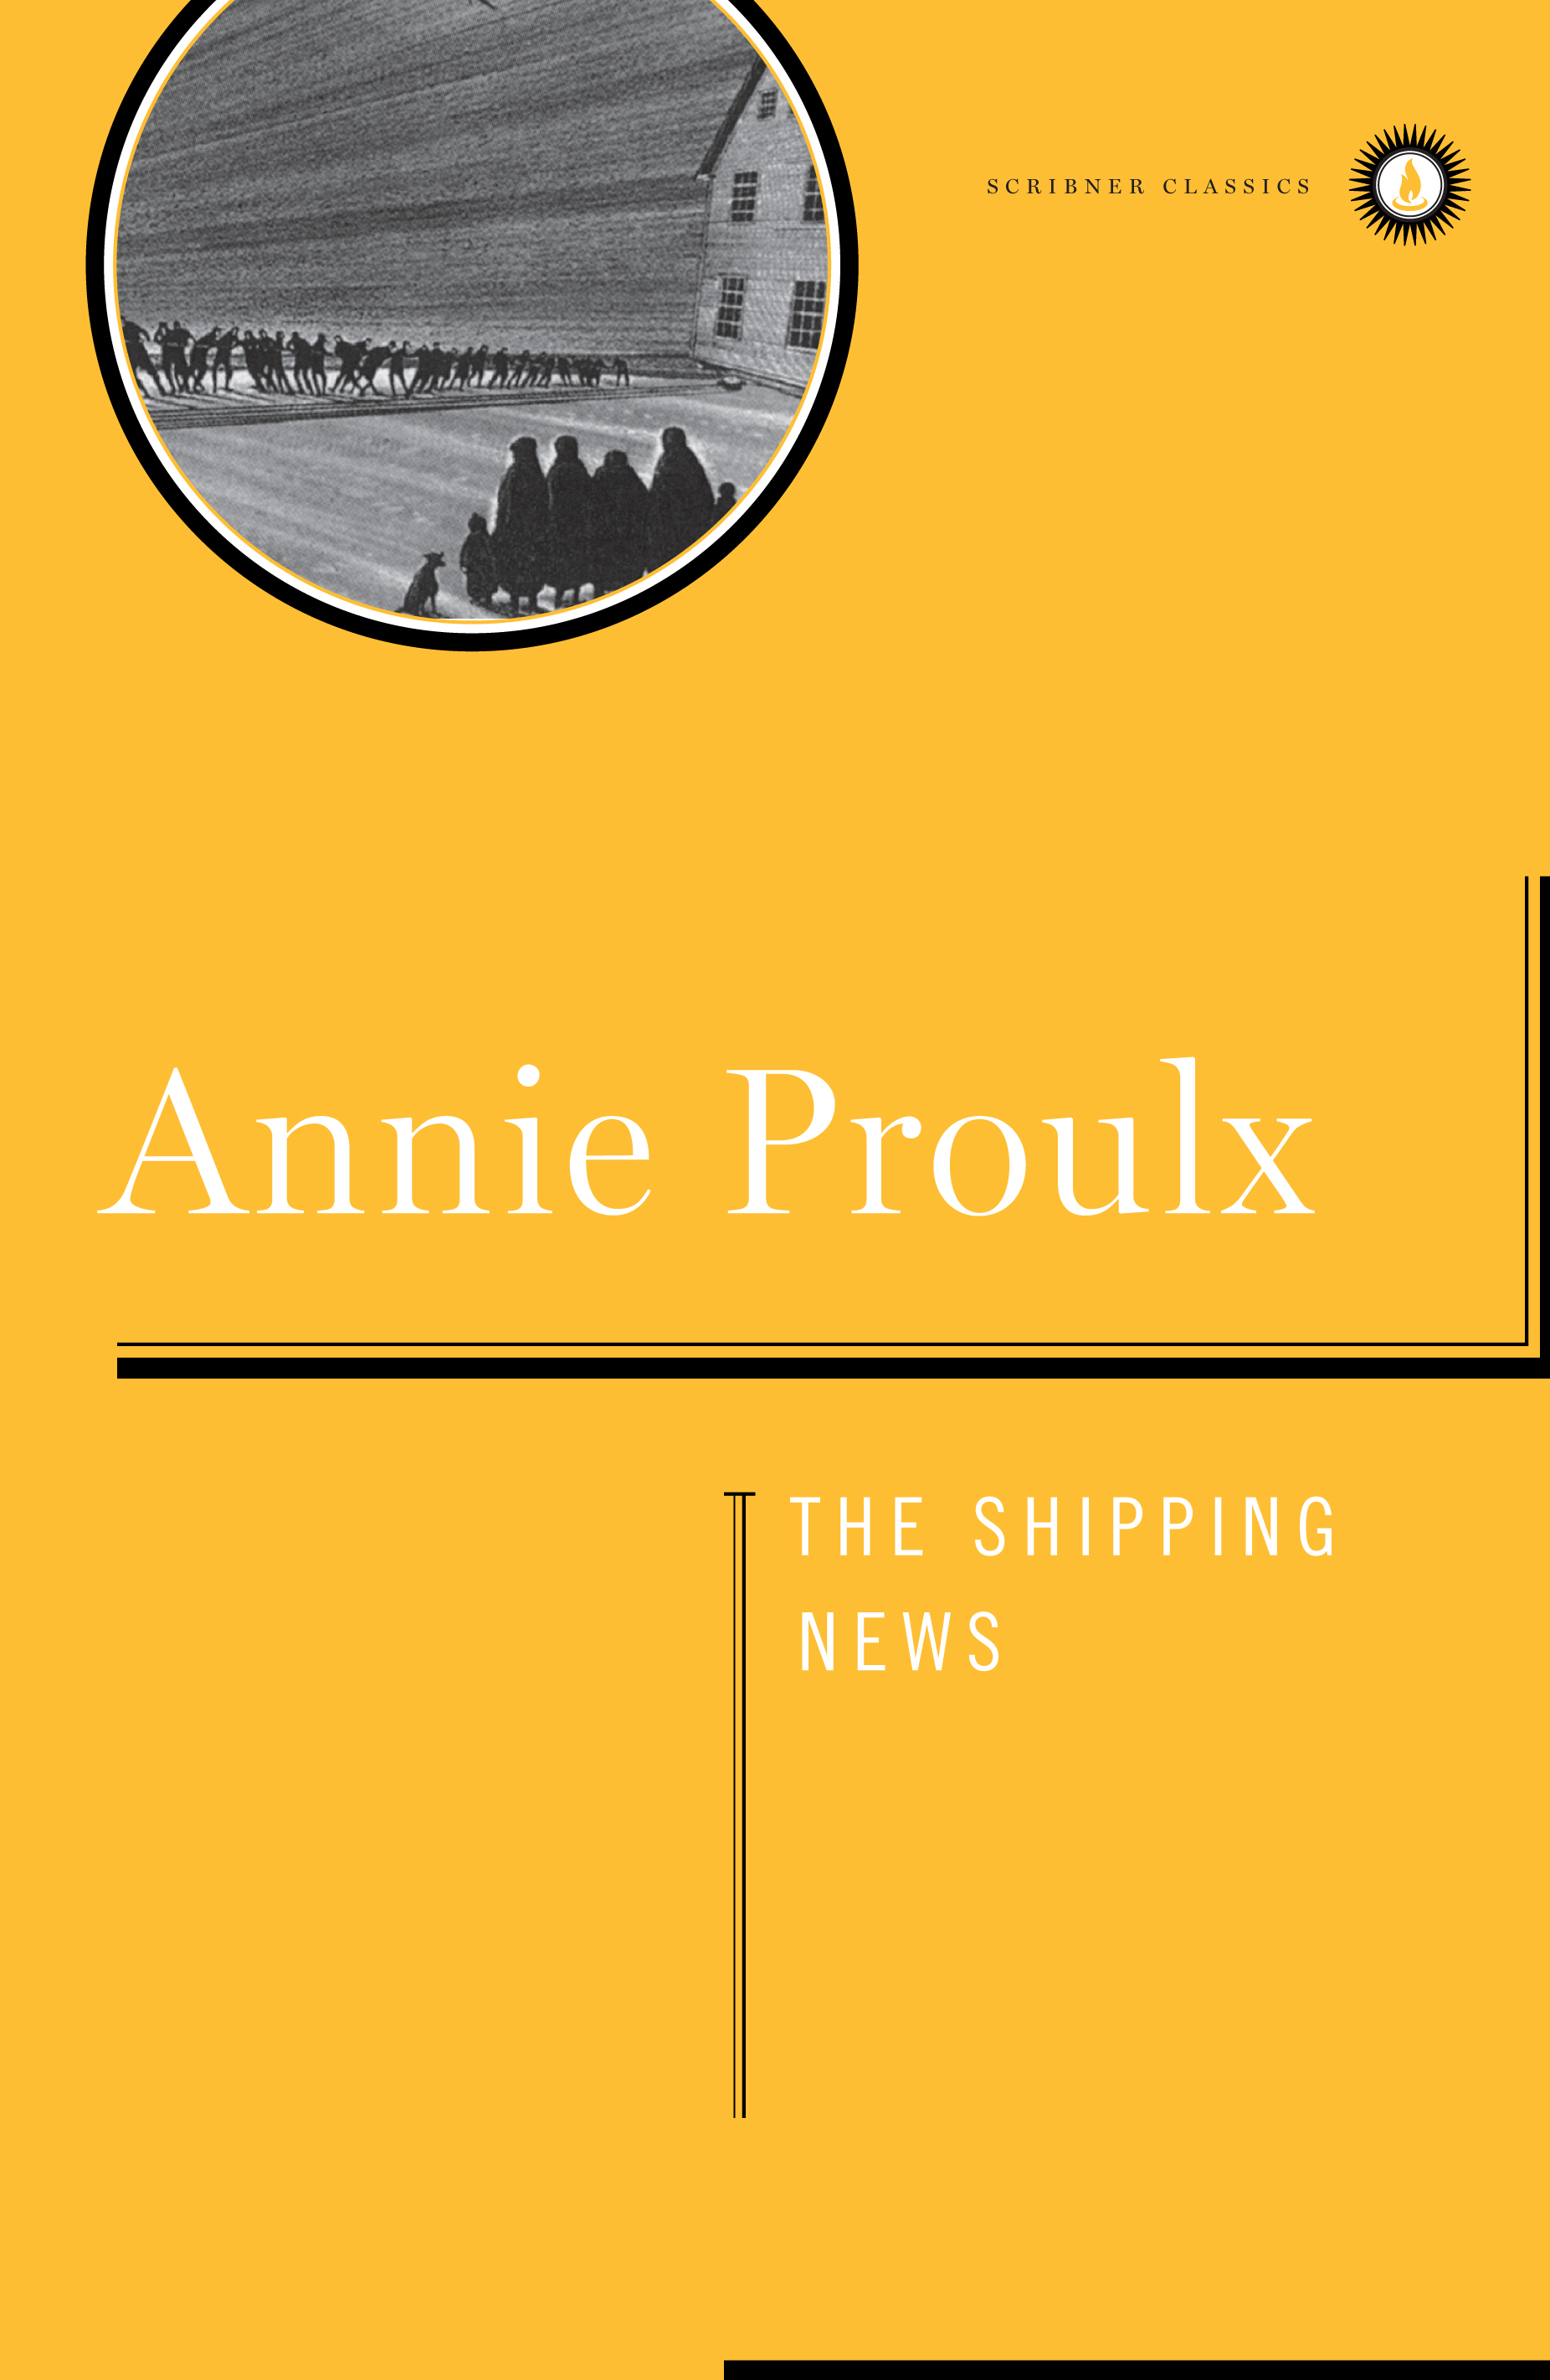 The cover of the book Shipping News